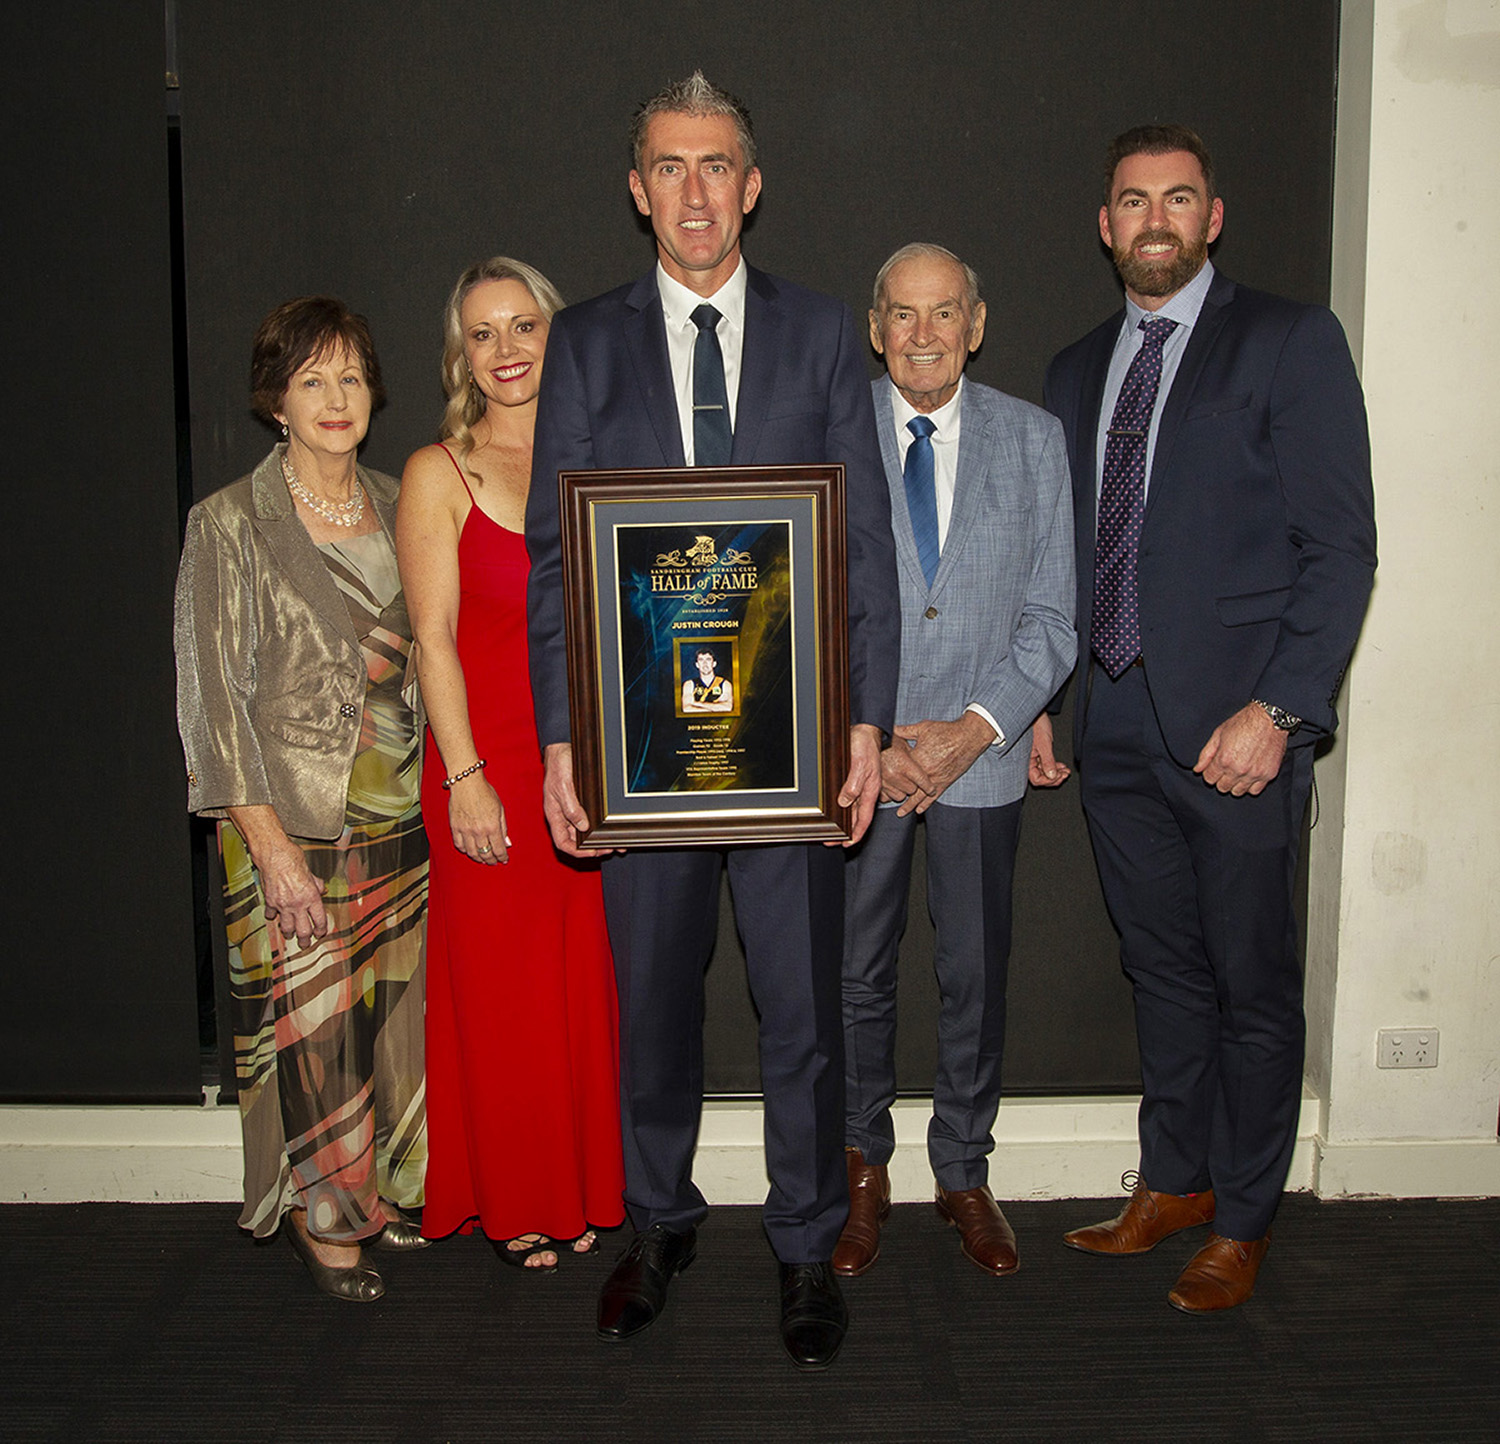 Justin Crough with family members at the 2019 Sandringham Football Club Hall of Fame dinner in June this year. He says there are many others as worthy as him for the honour.